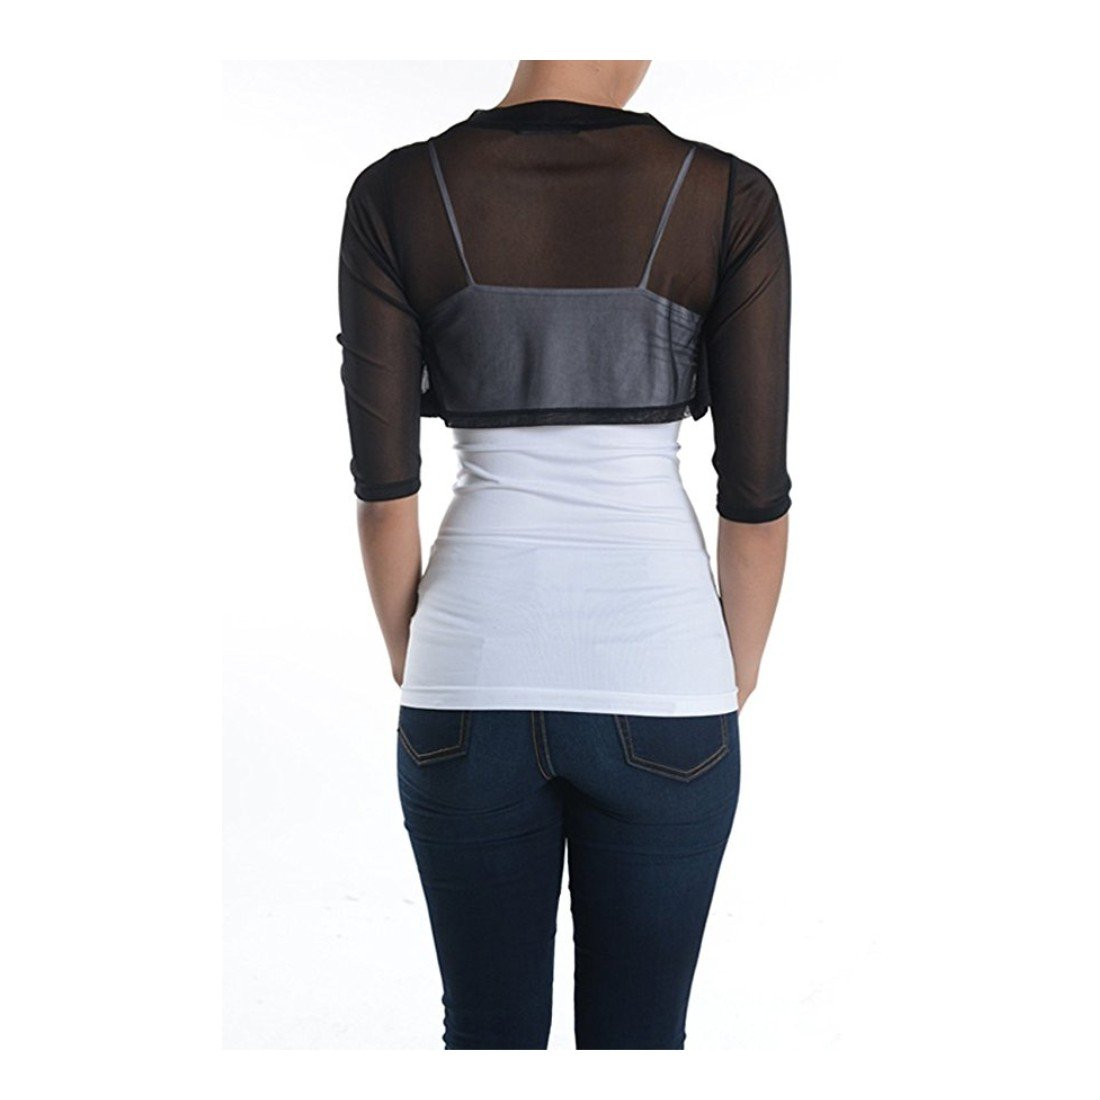 f58be37e6009a3 Macria Women's Sheer Chiffon Bolero Shrug Jacket Cardigan 3/4 Sleeves:  Amazon.co.uk: Clothing